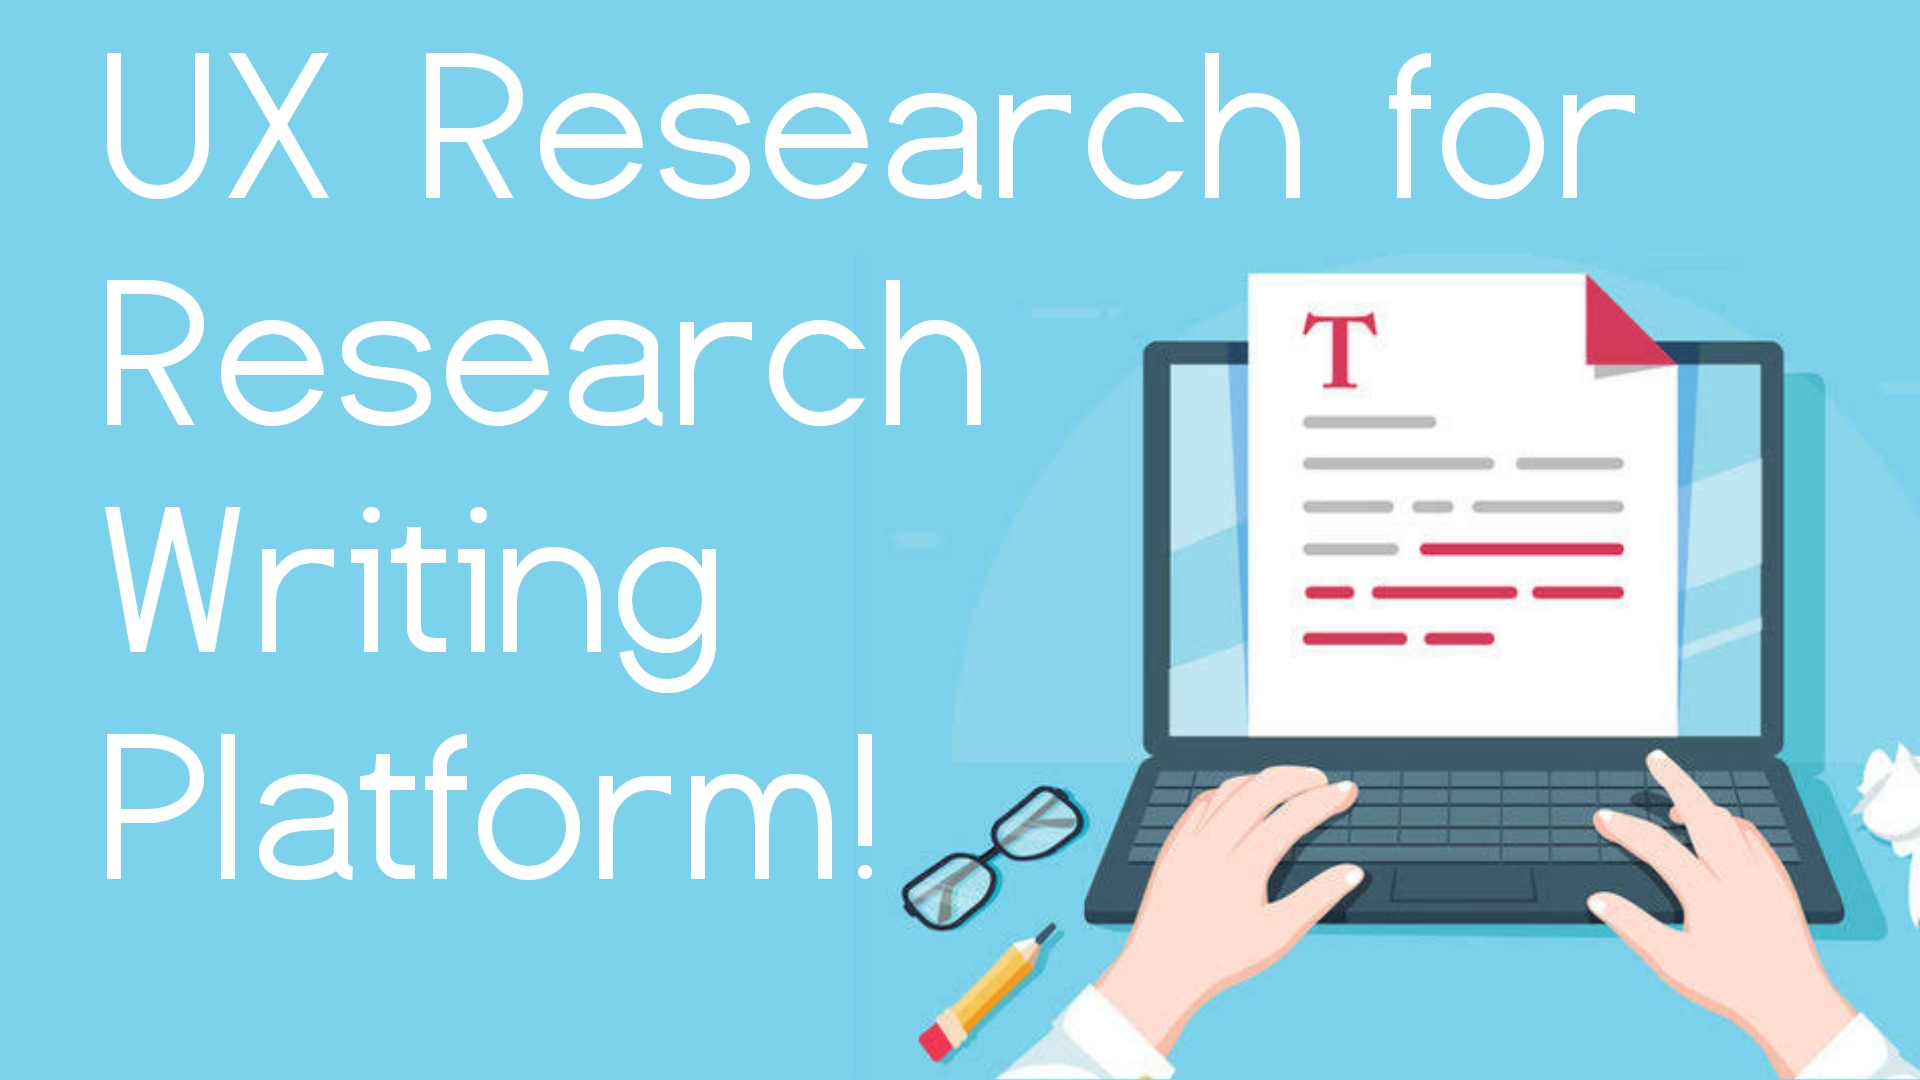 UX Research for Research Writing Tool